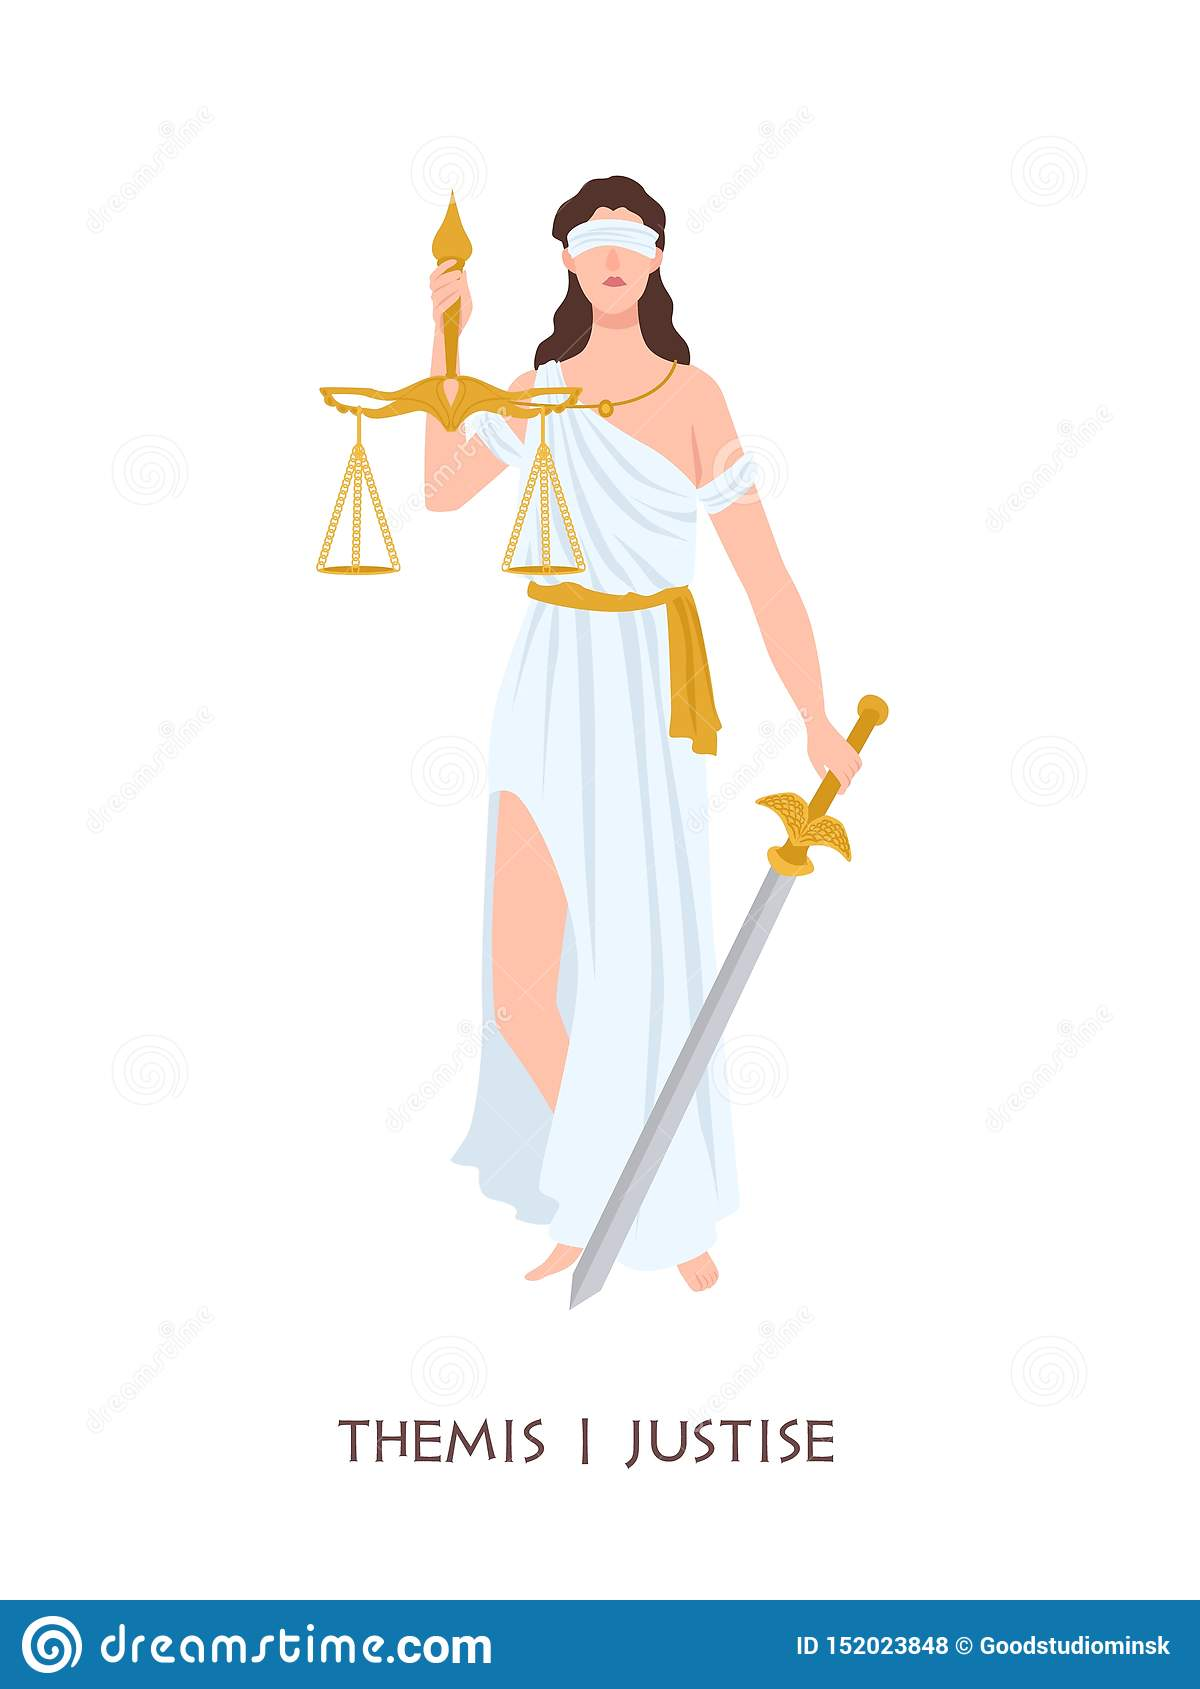 Themis or Justice - goddess of order, fairness, law from ancient Hellenic myths. Greek and Roman legendary female